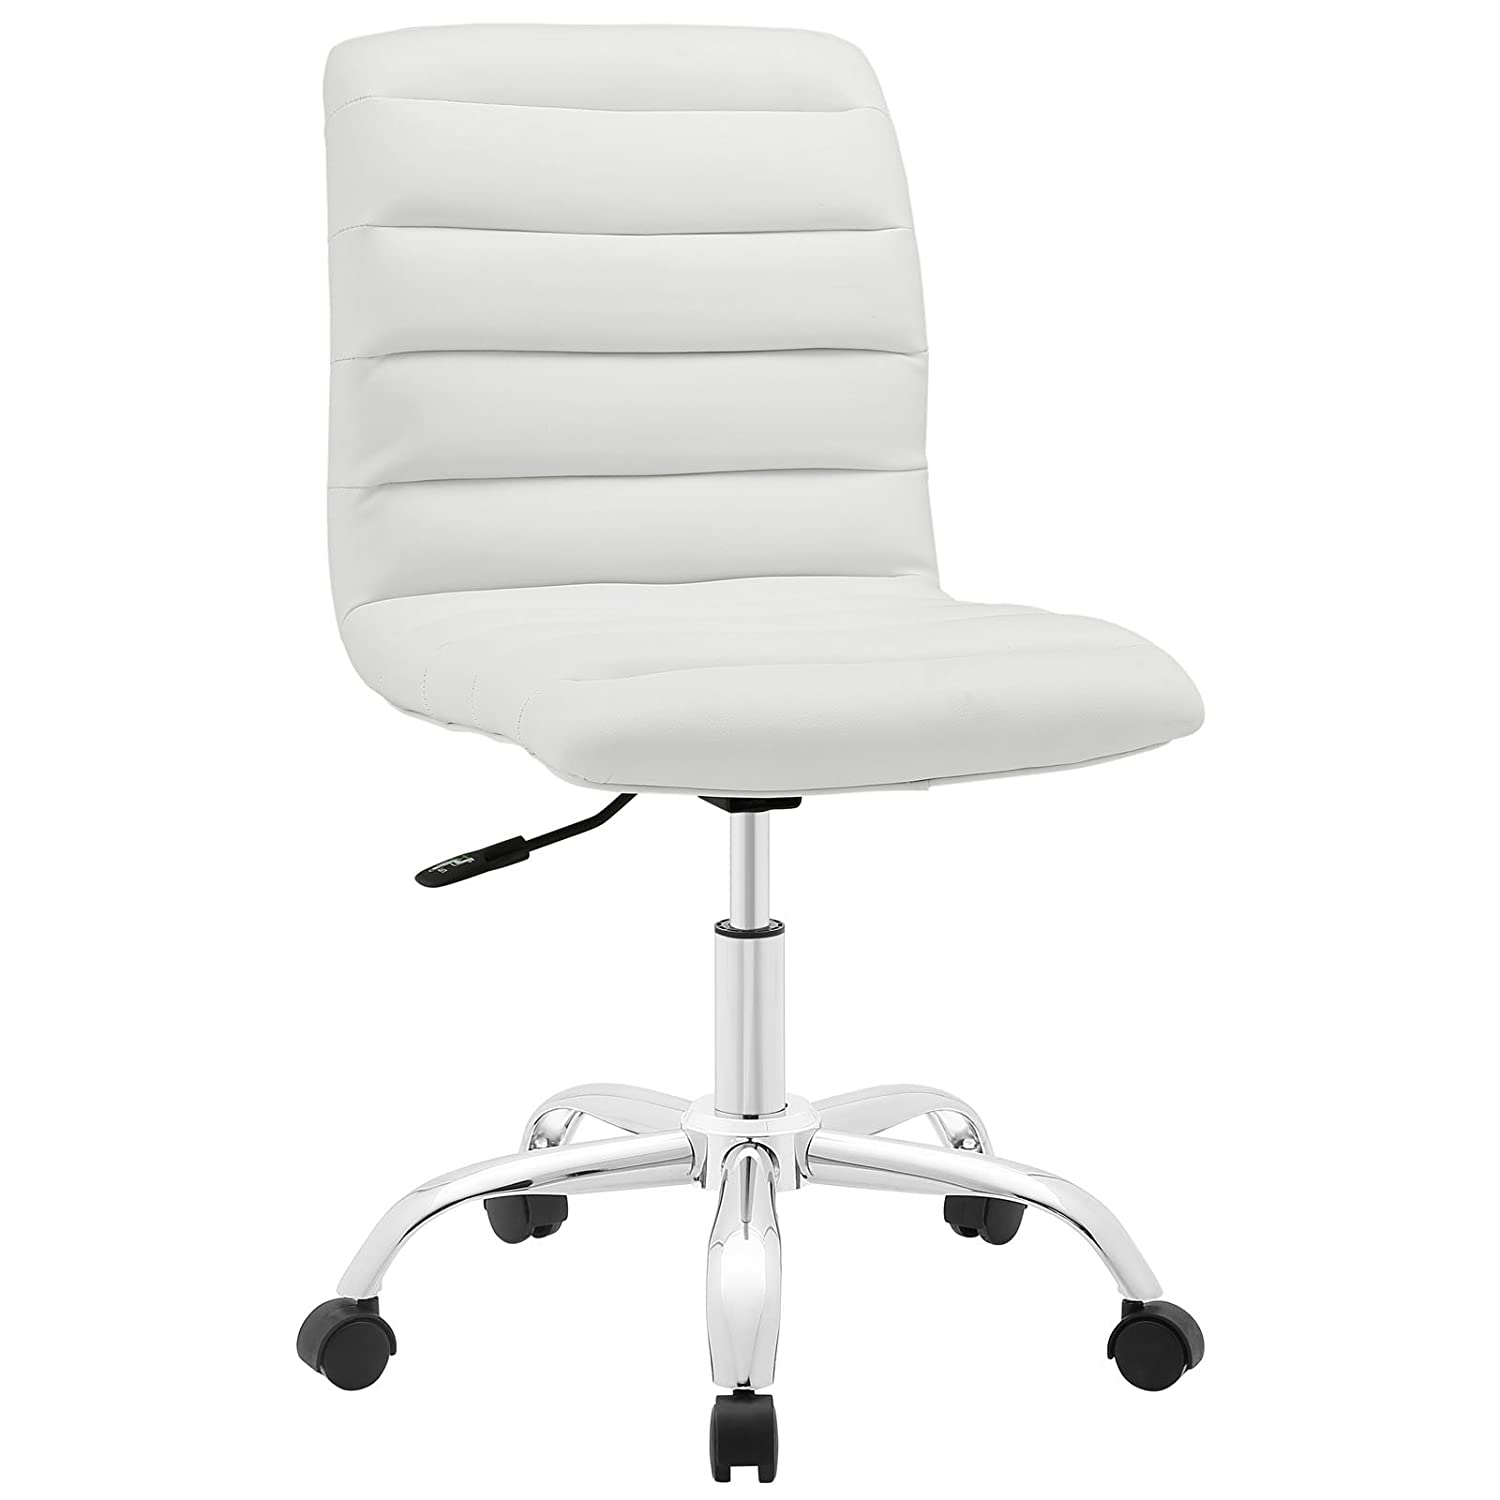 executive computer backrest gaming chair detachable office ergonomic pc reclining with hullr white racing gt pin lumbar headrest xbox laptop back design high